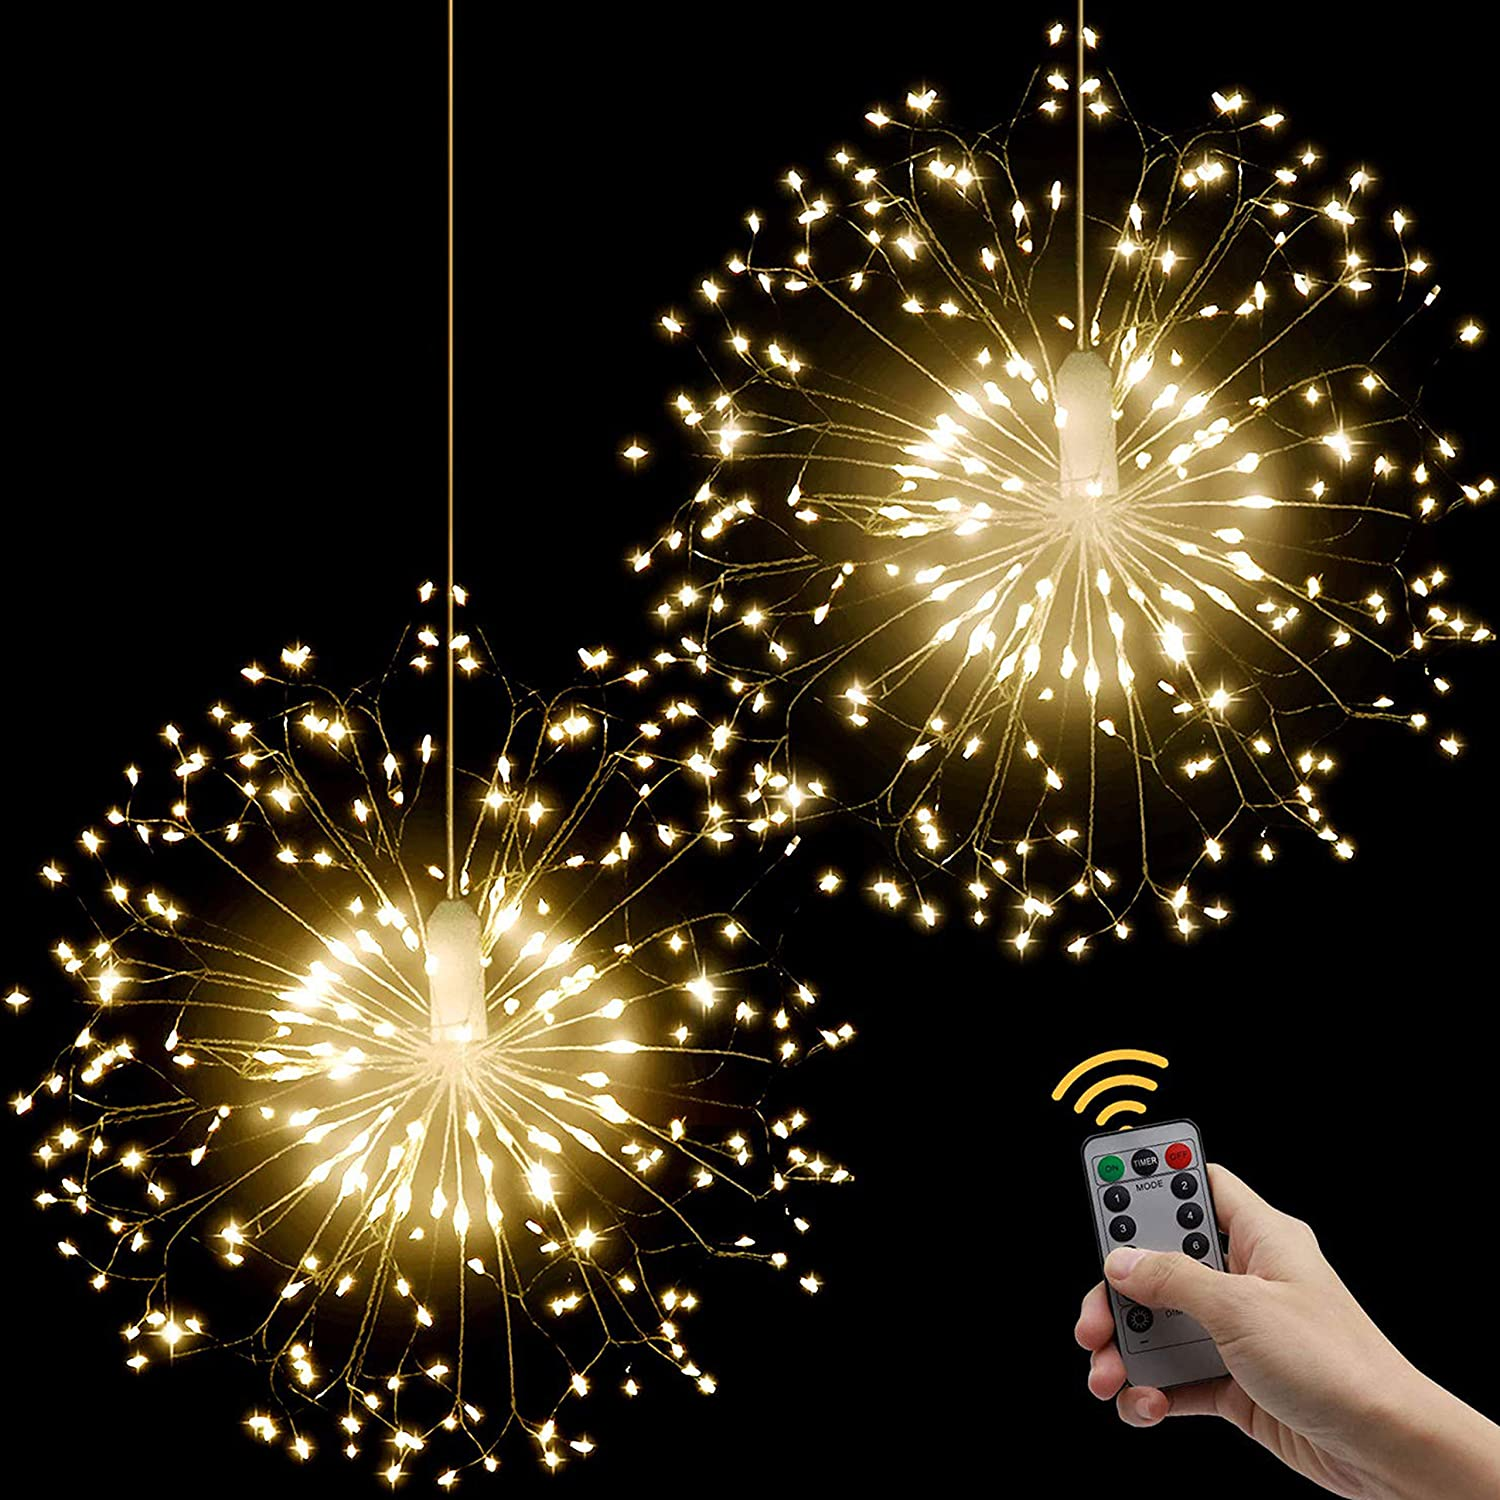 Fairy String Led Lights, Fireworks Light Battery Powered Copper Wire Twinkle Micro Mini Starry Starburst Light for DIY Home Party Tree Garden Patio Halloween Decoration - Warm White